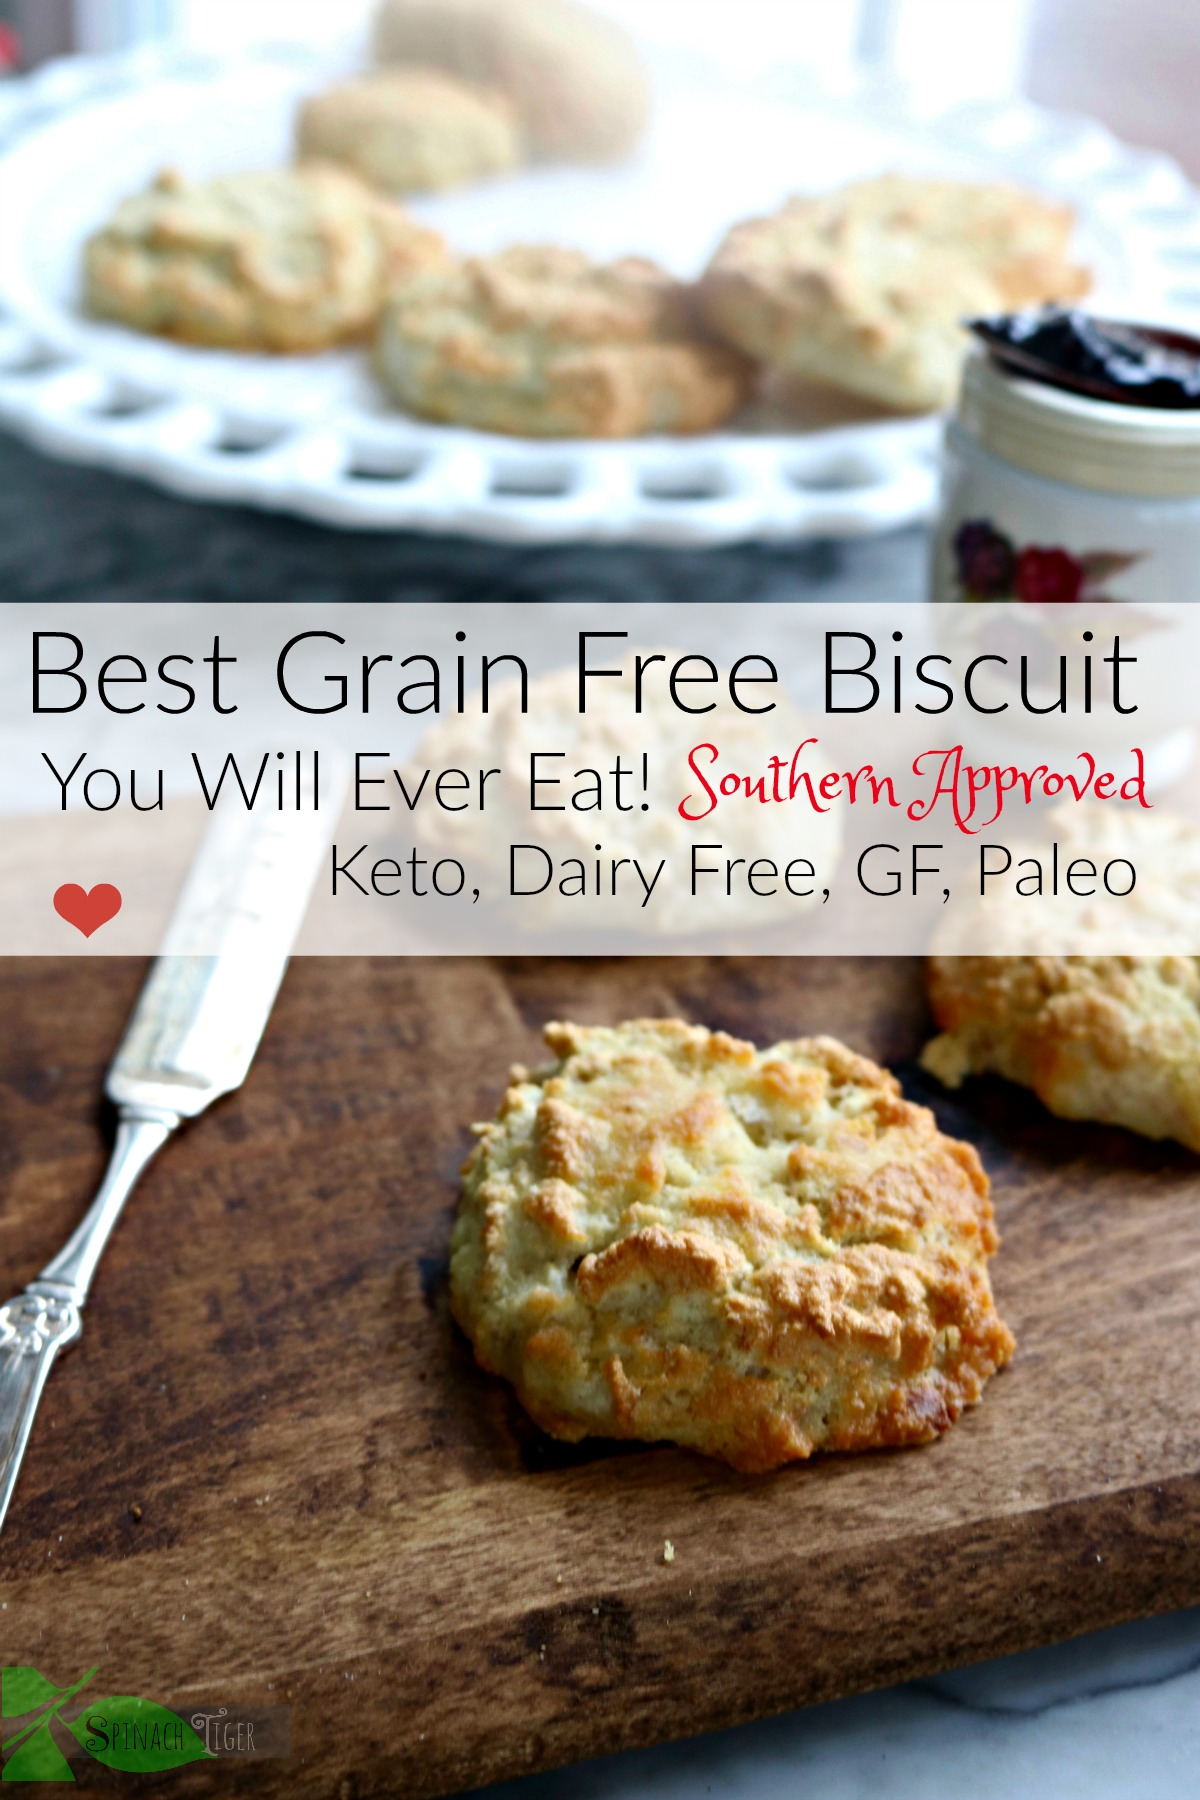 The best grain free biscuit anywhere. My students LOVE these in my keto baking class. #grainfreebiscuit #ketobiscuit #spinachtiger via @angelaroberts